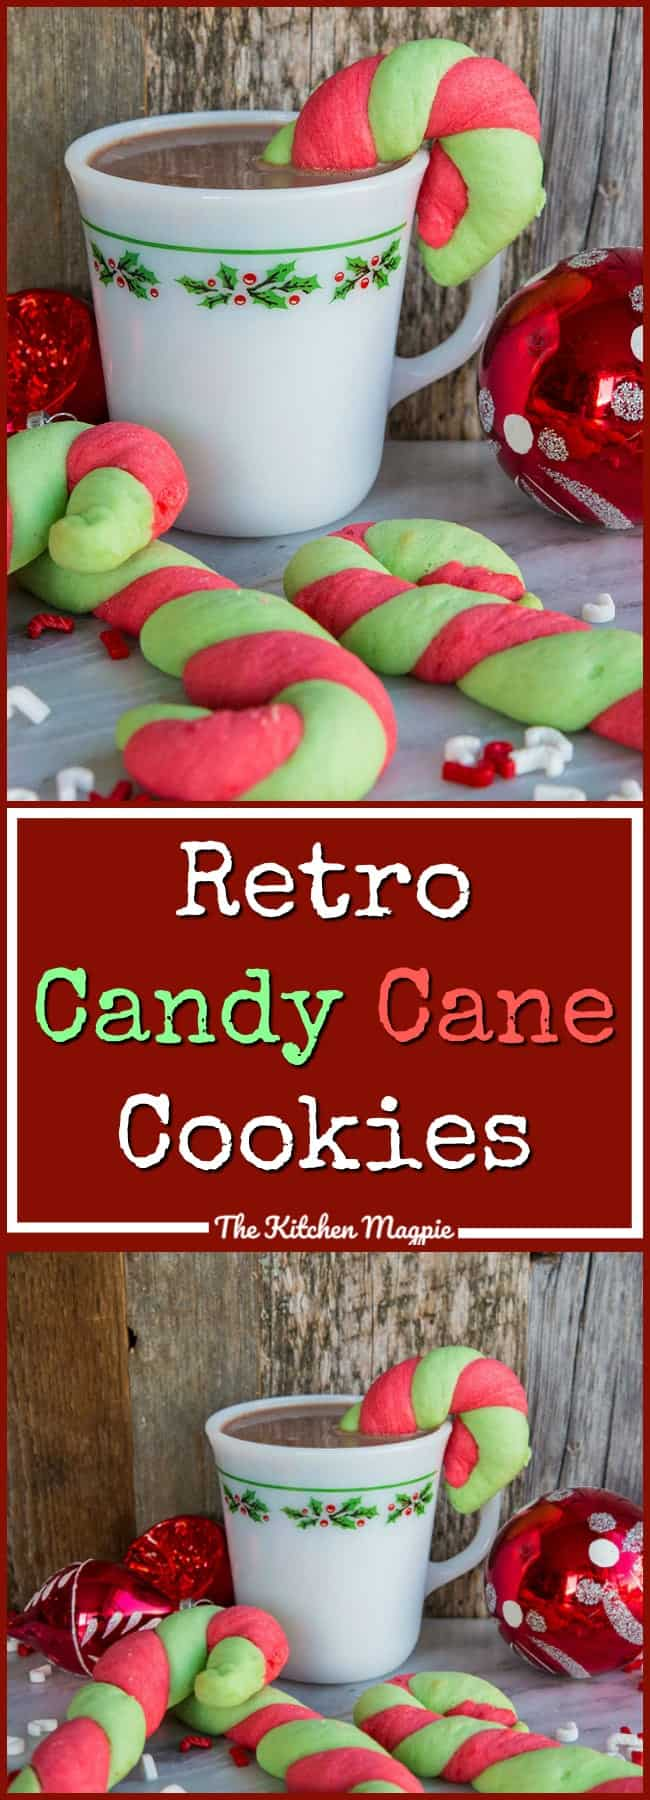 Classic Christmas Candy Cane Cookies in glorious red and green stripes! It's not Christmas in our house until we bake a batch!Recipe from @kitchenmagpie #cookies #christmas #candycanes #holidays #recipes #dessert #treats #christmascookie